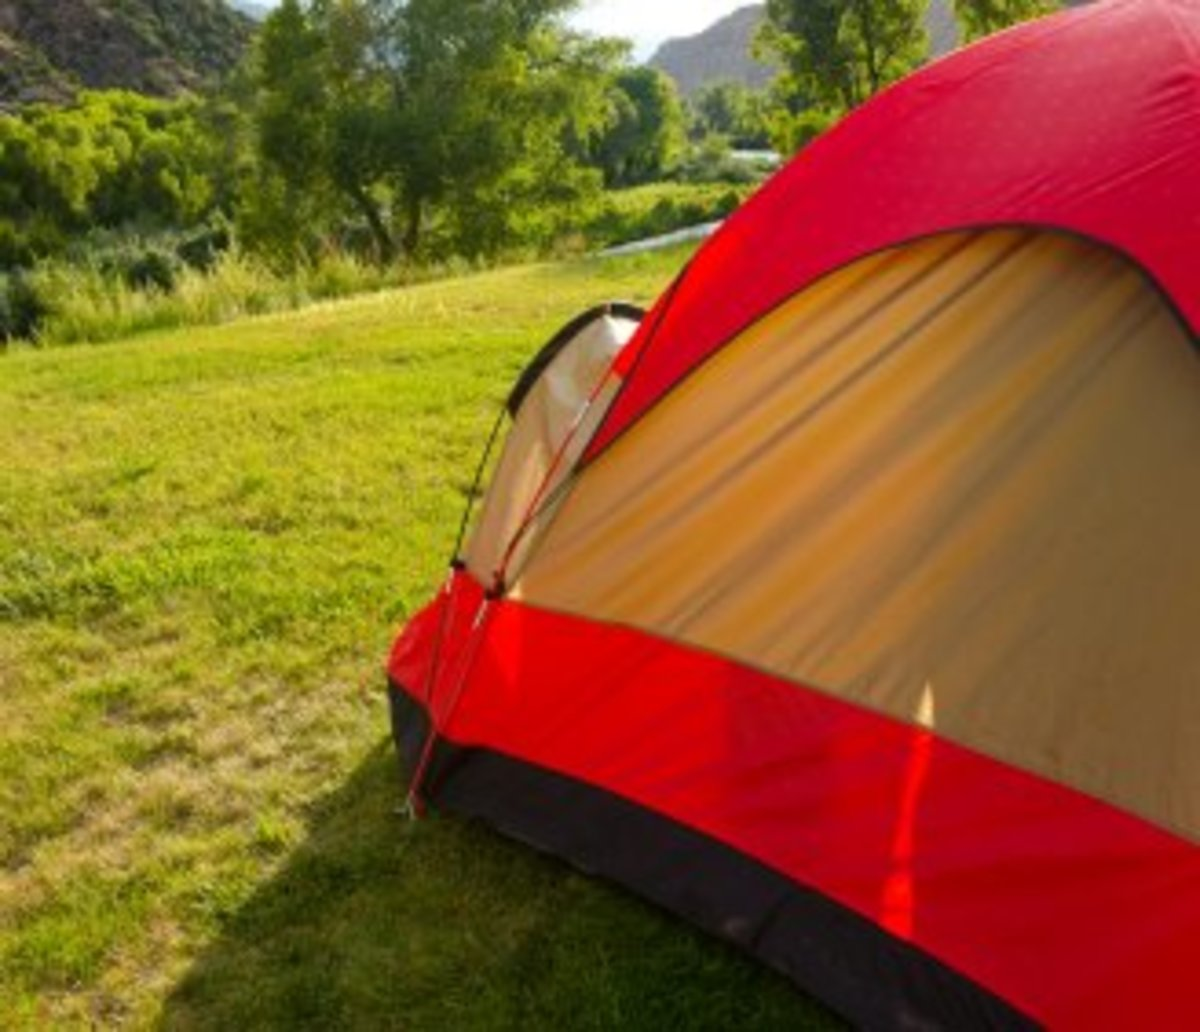 Maybe it is time you relived your childhood days and asked your girlfriend to come for a sleepover in your backyard tent.